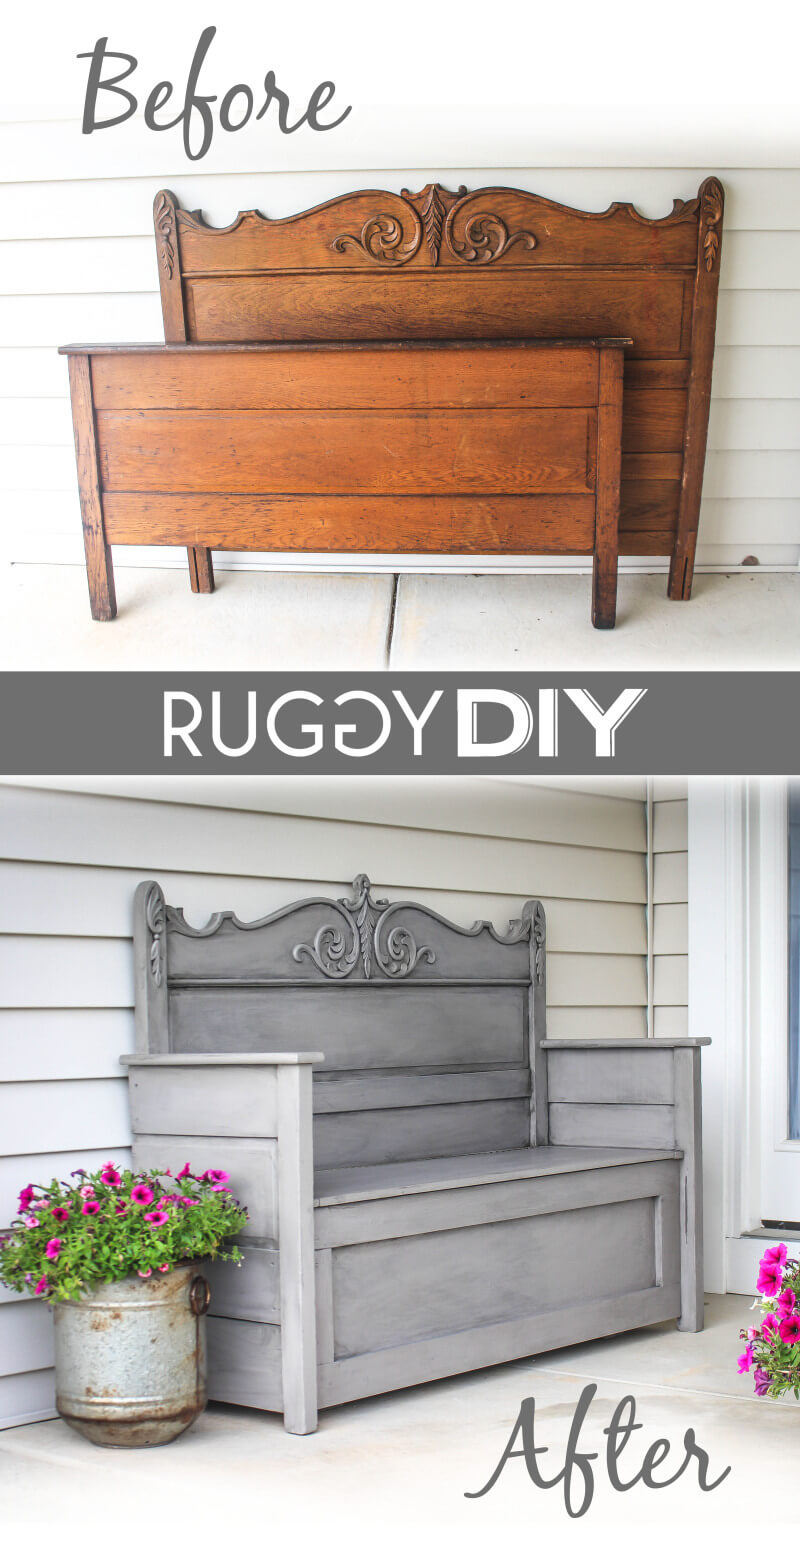 Antique Up-Cycled Head-Board Bench